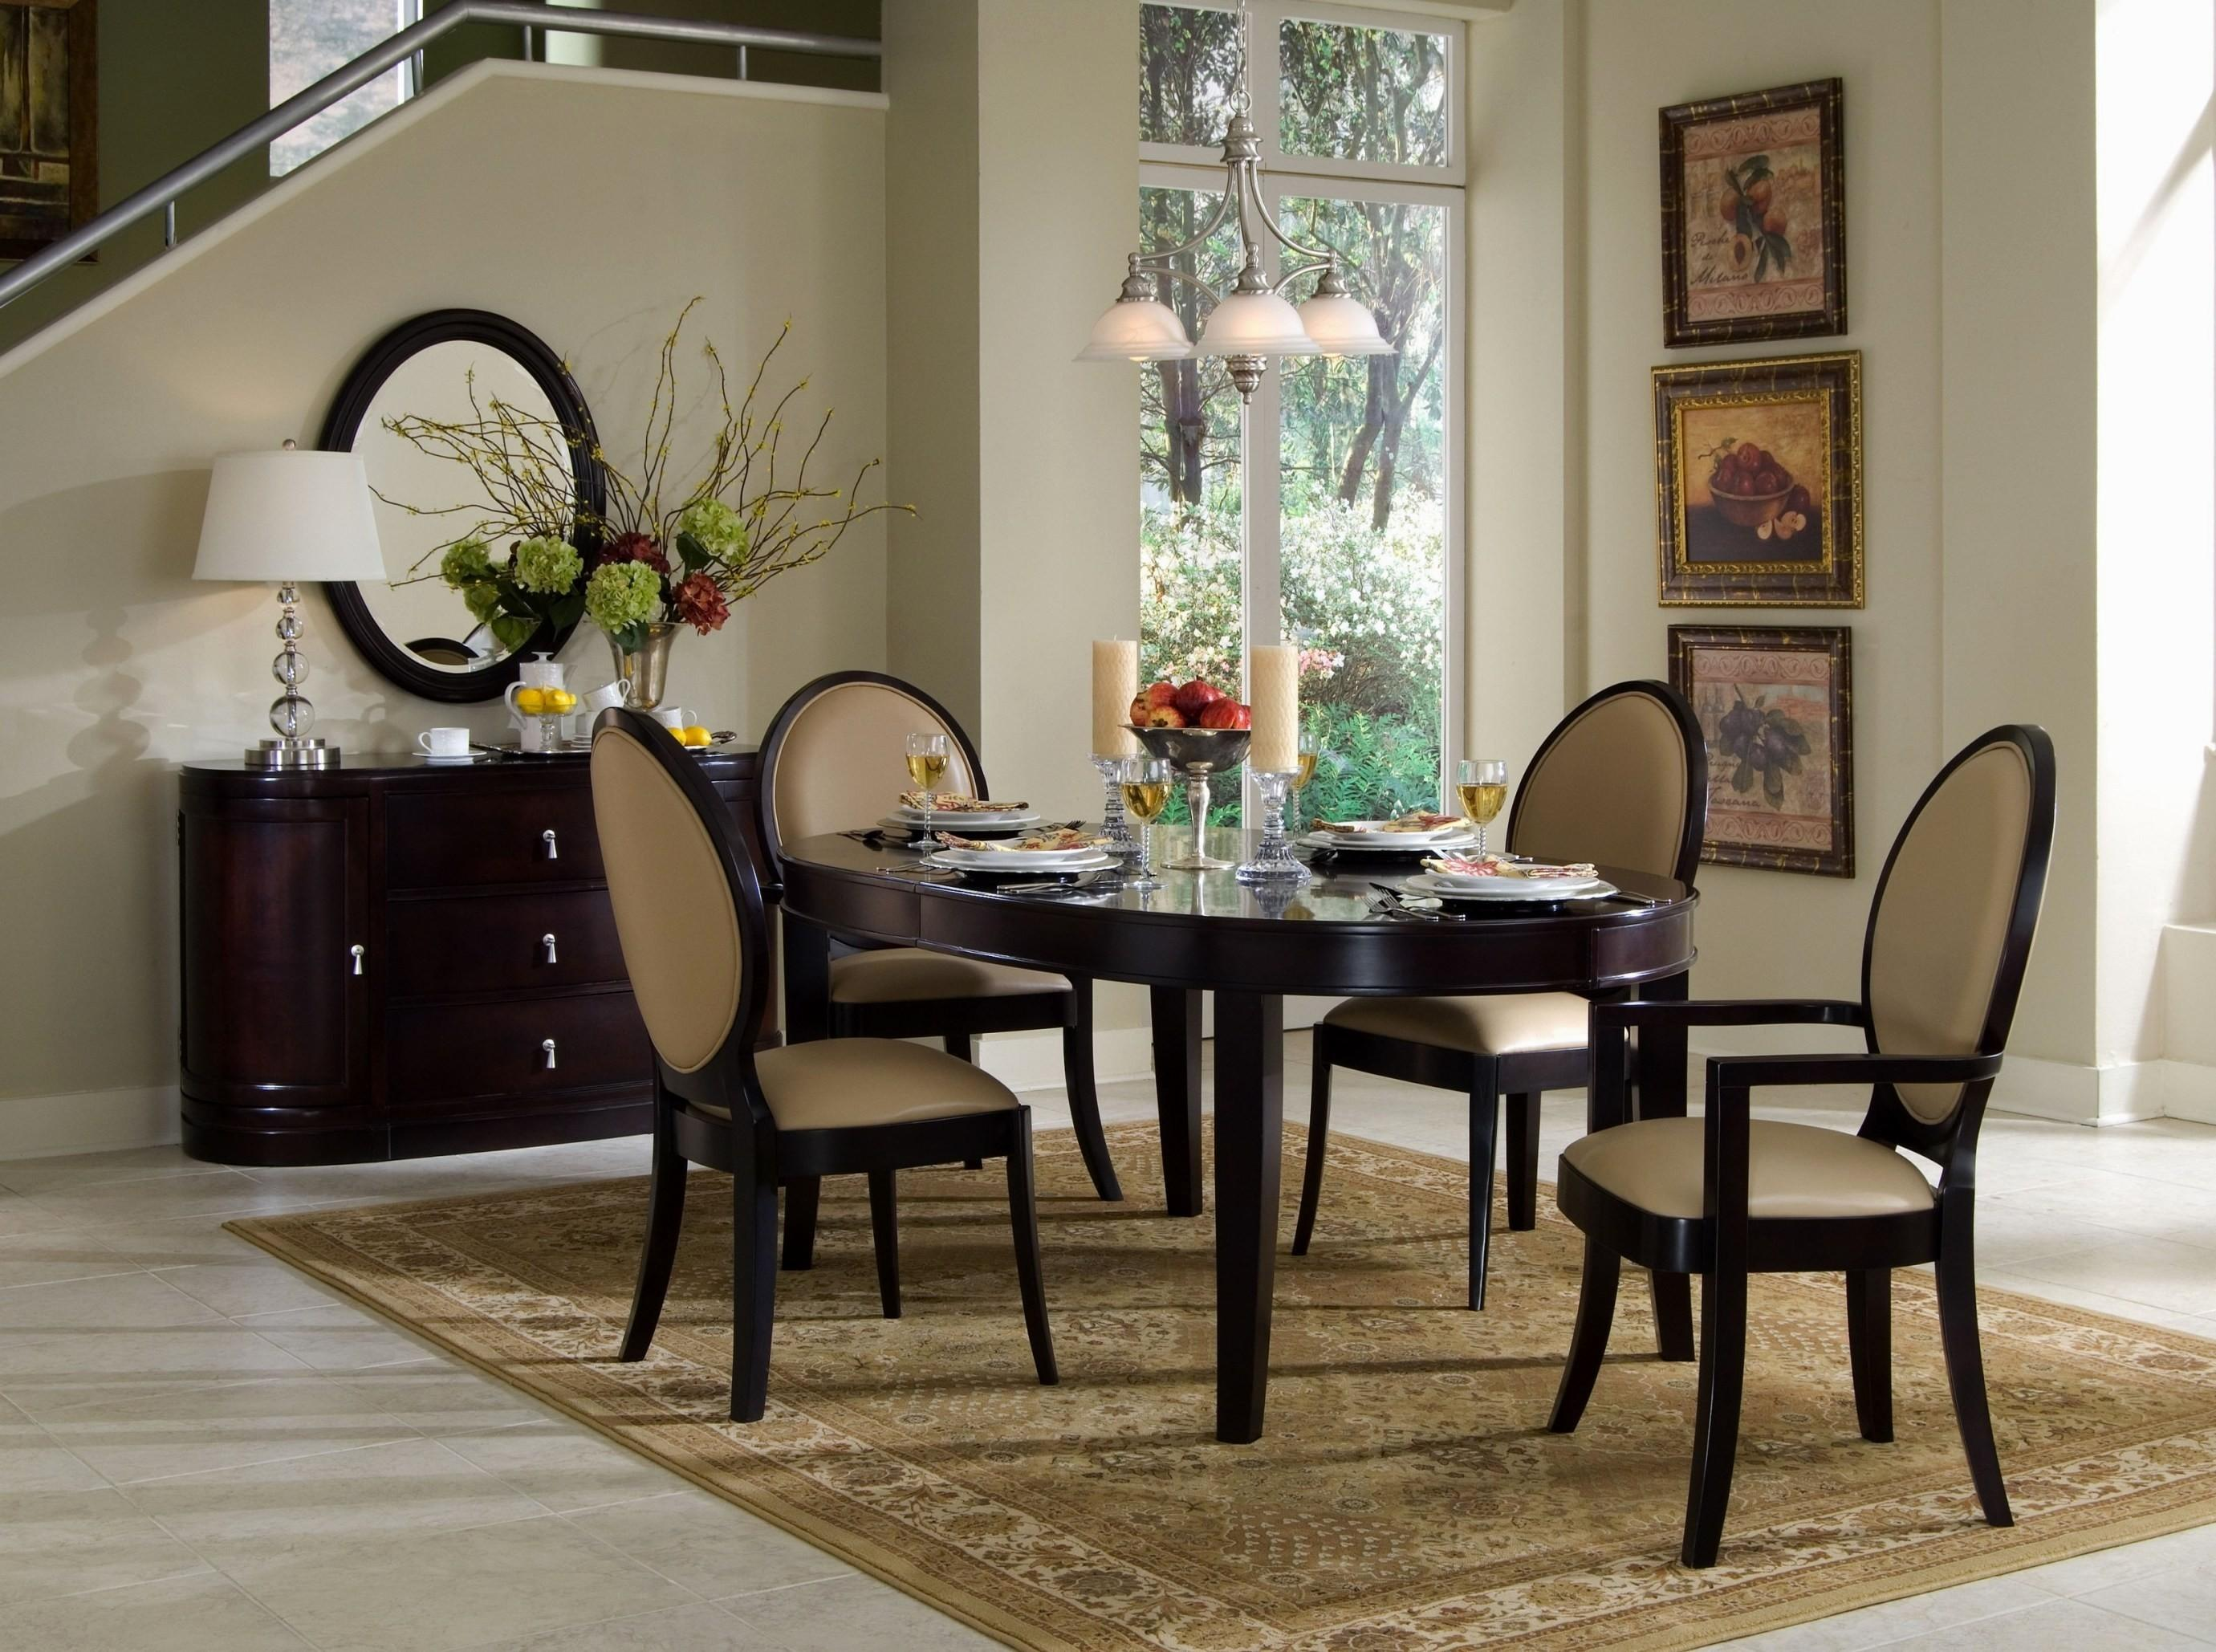 Dining Table Candle Centerpiece Ideas Room